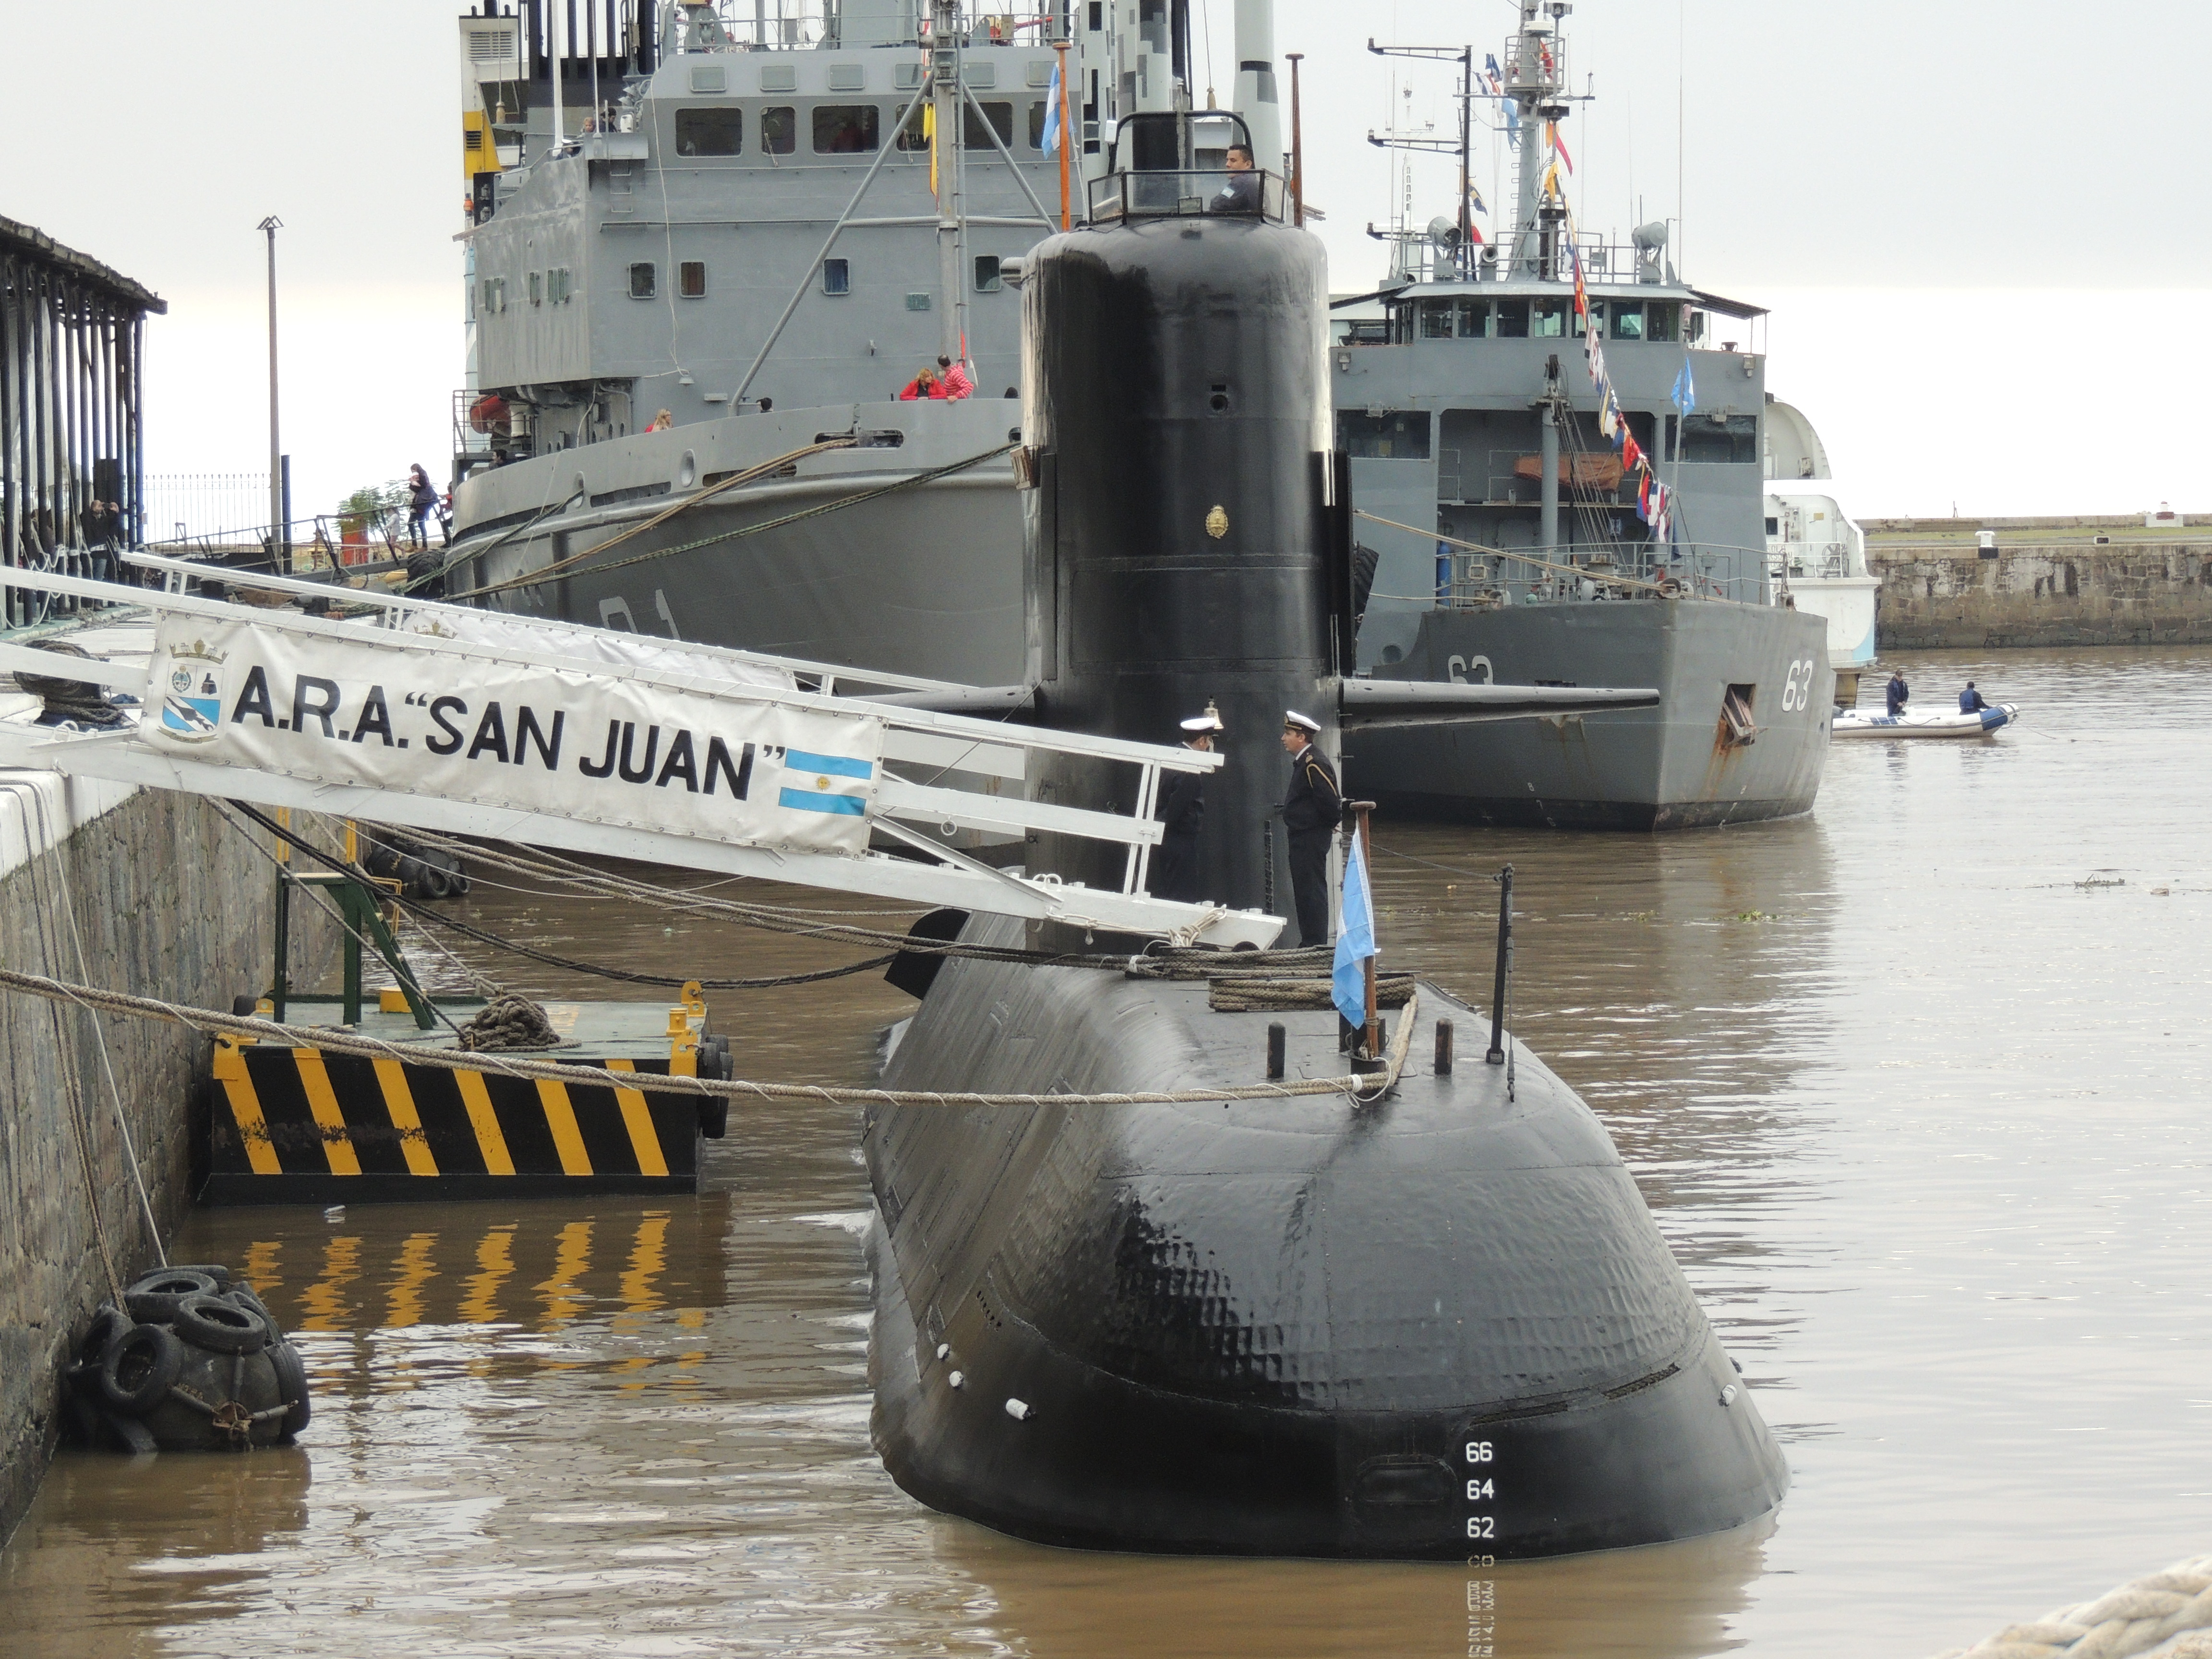 One Year Later, Search For Missing Argentine Submarine